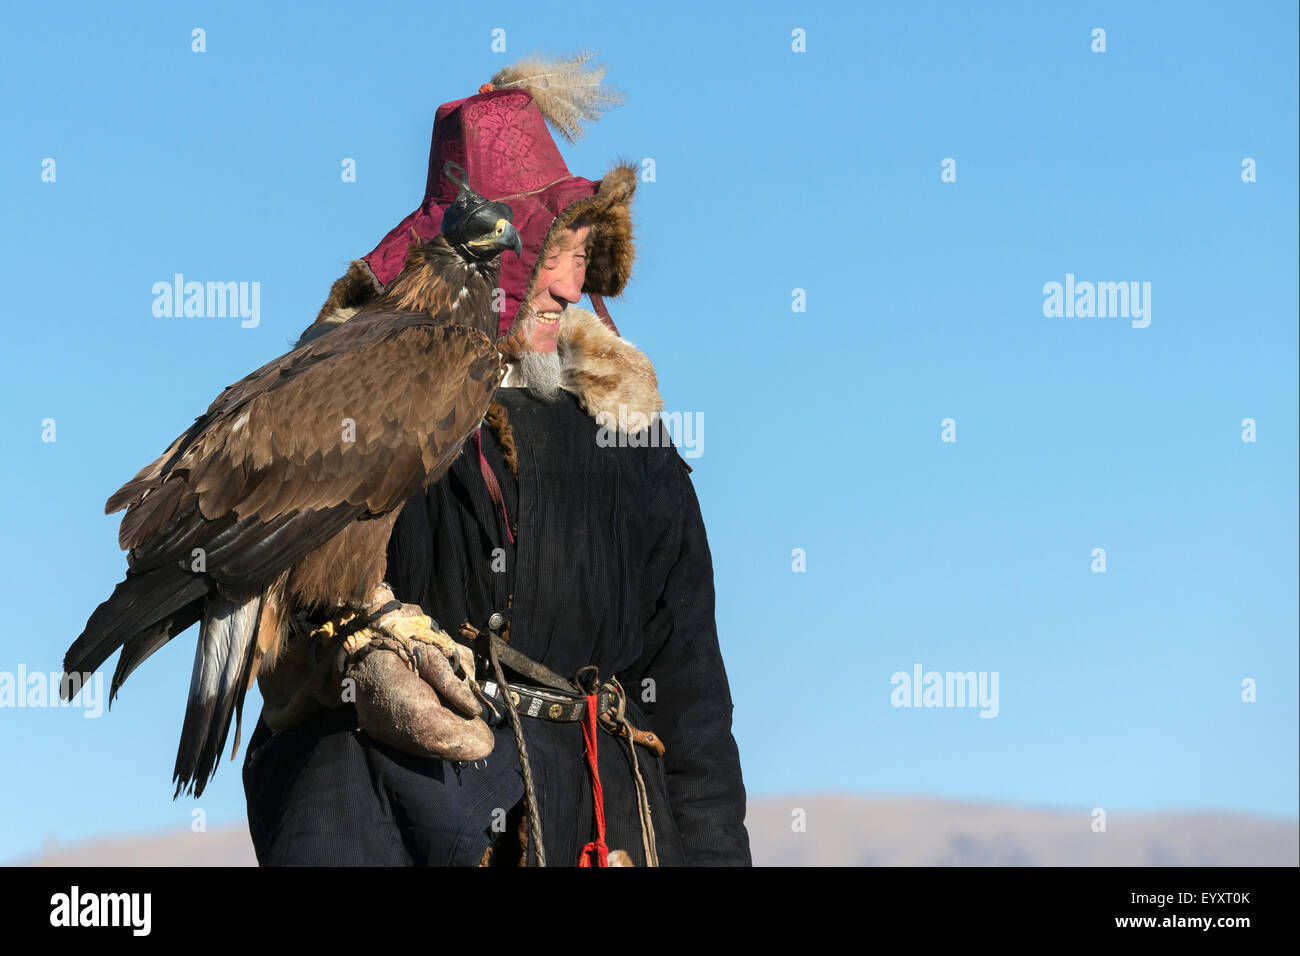 Eagle hunter and golden eagle scanning the valley below, west of Olgii, Western Mongolia - Stock Image